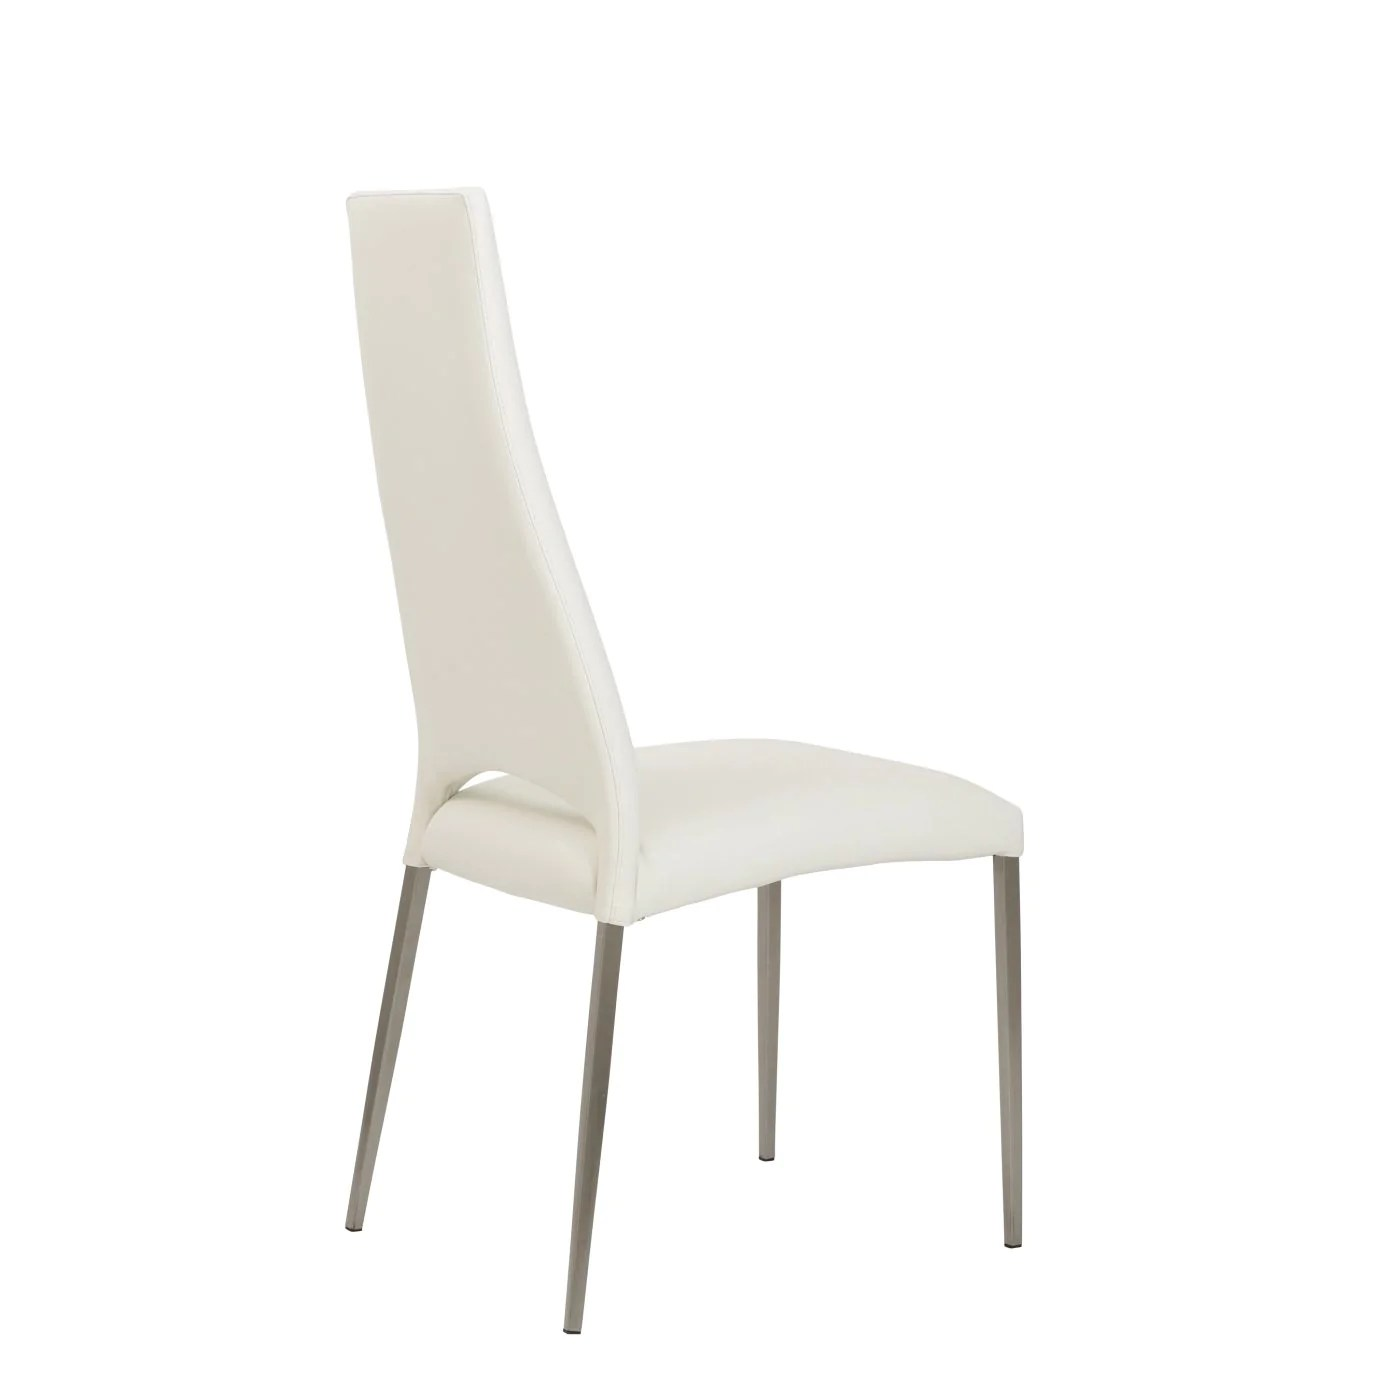 dining chairs with stainless steel legs childrens bean bag chair euro style tara in white leatherette